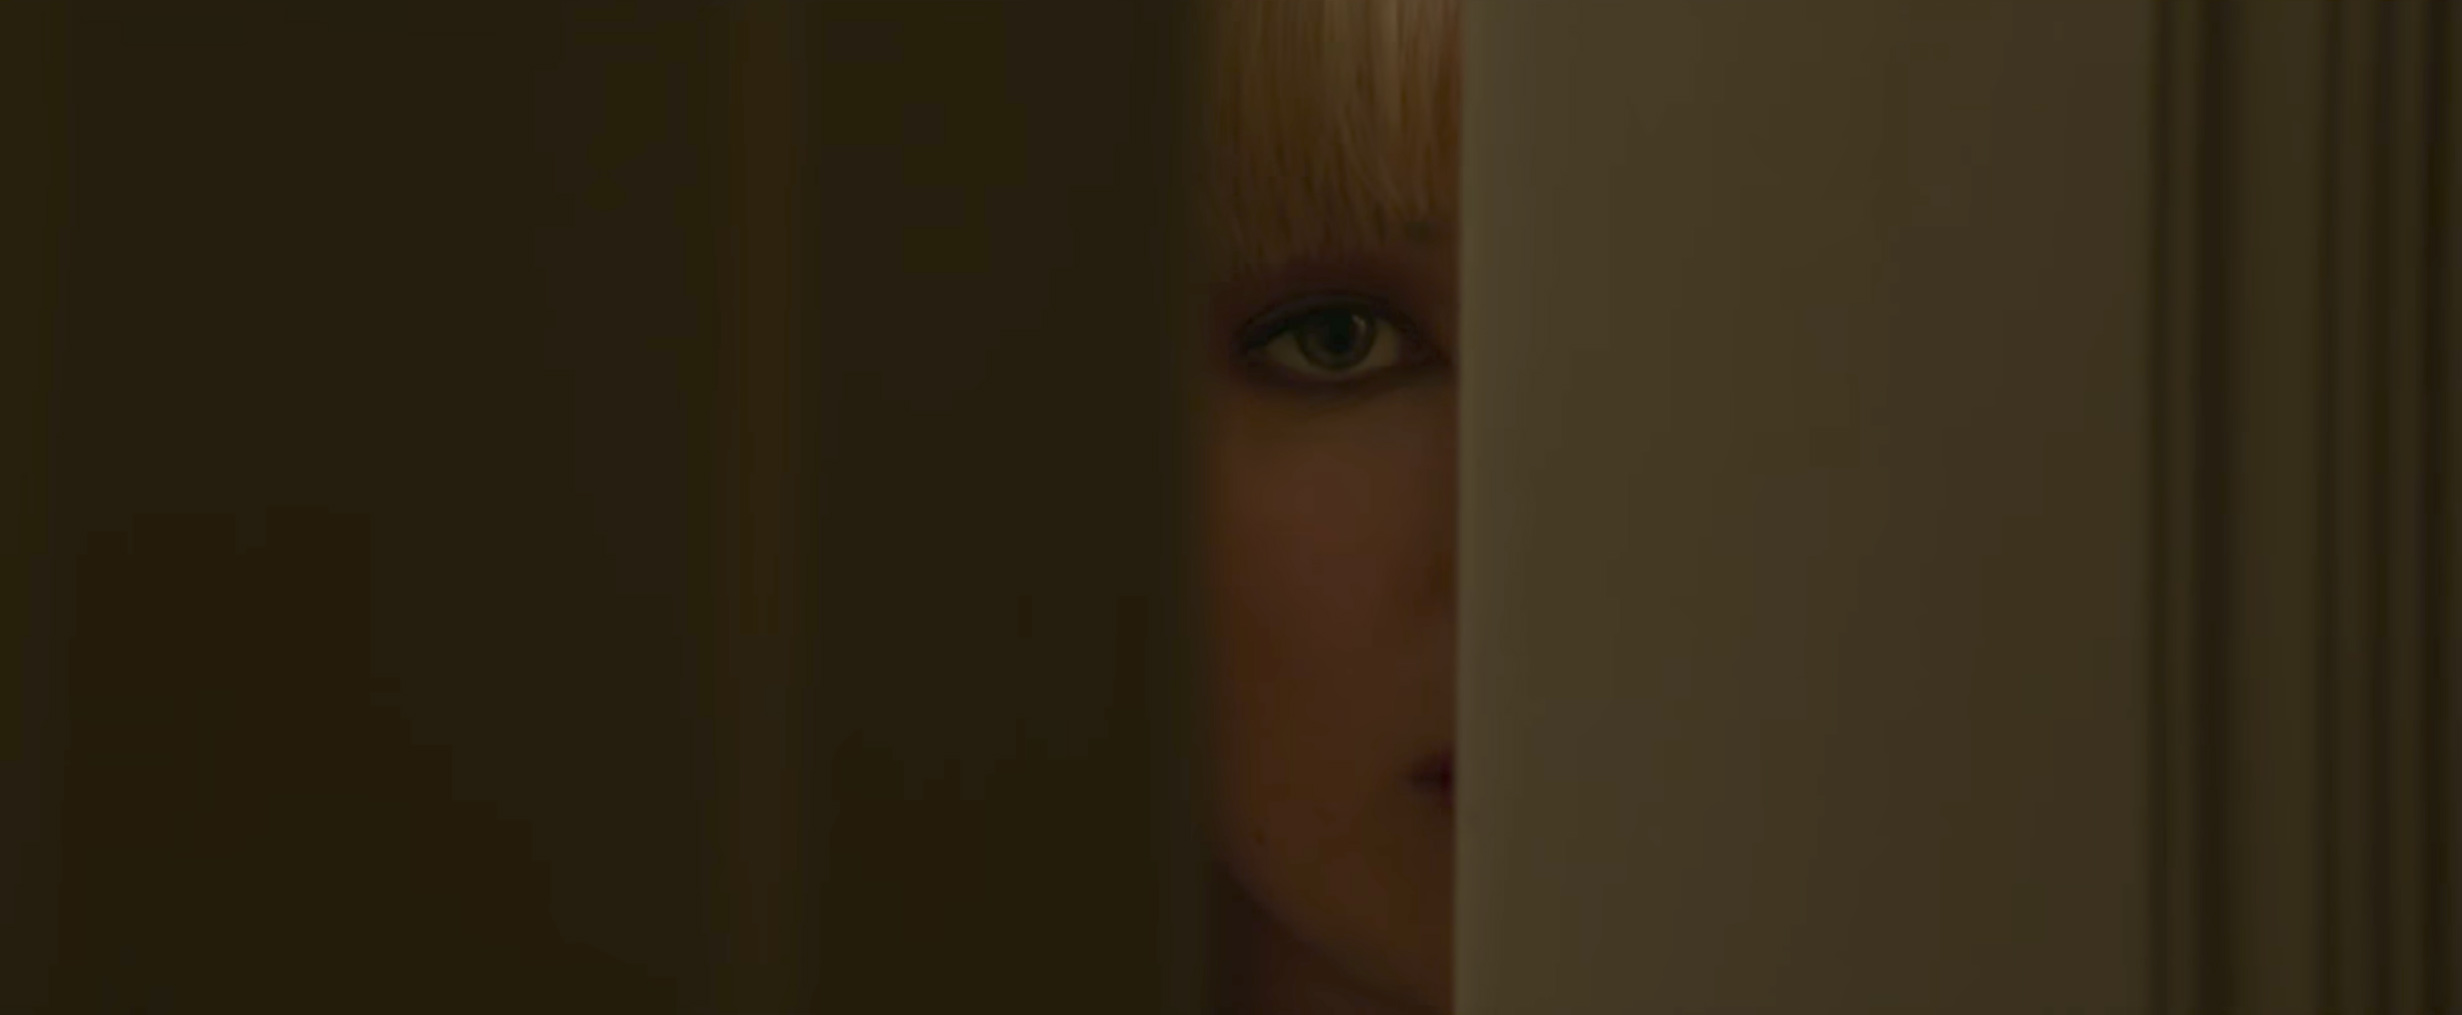 Jennifer Lawrence RED SPARROW peeping through the door